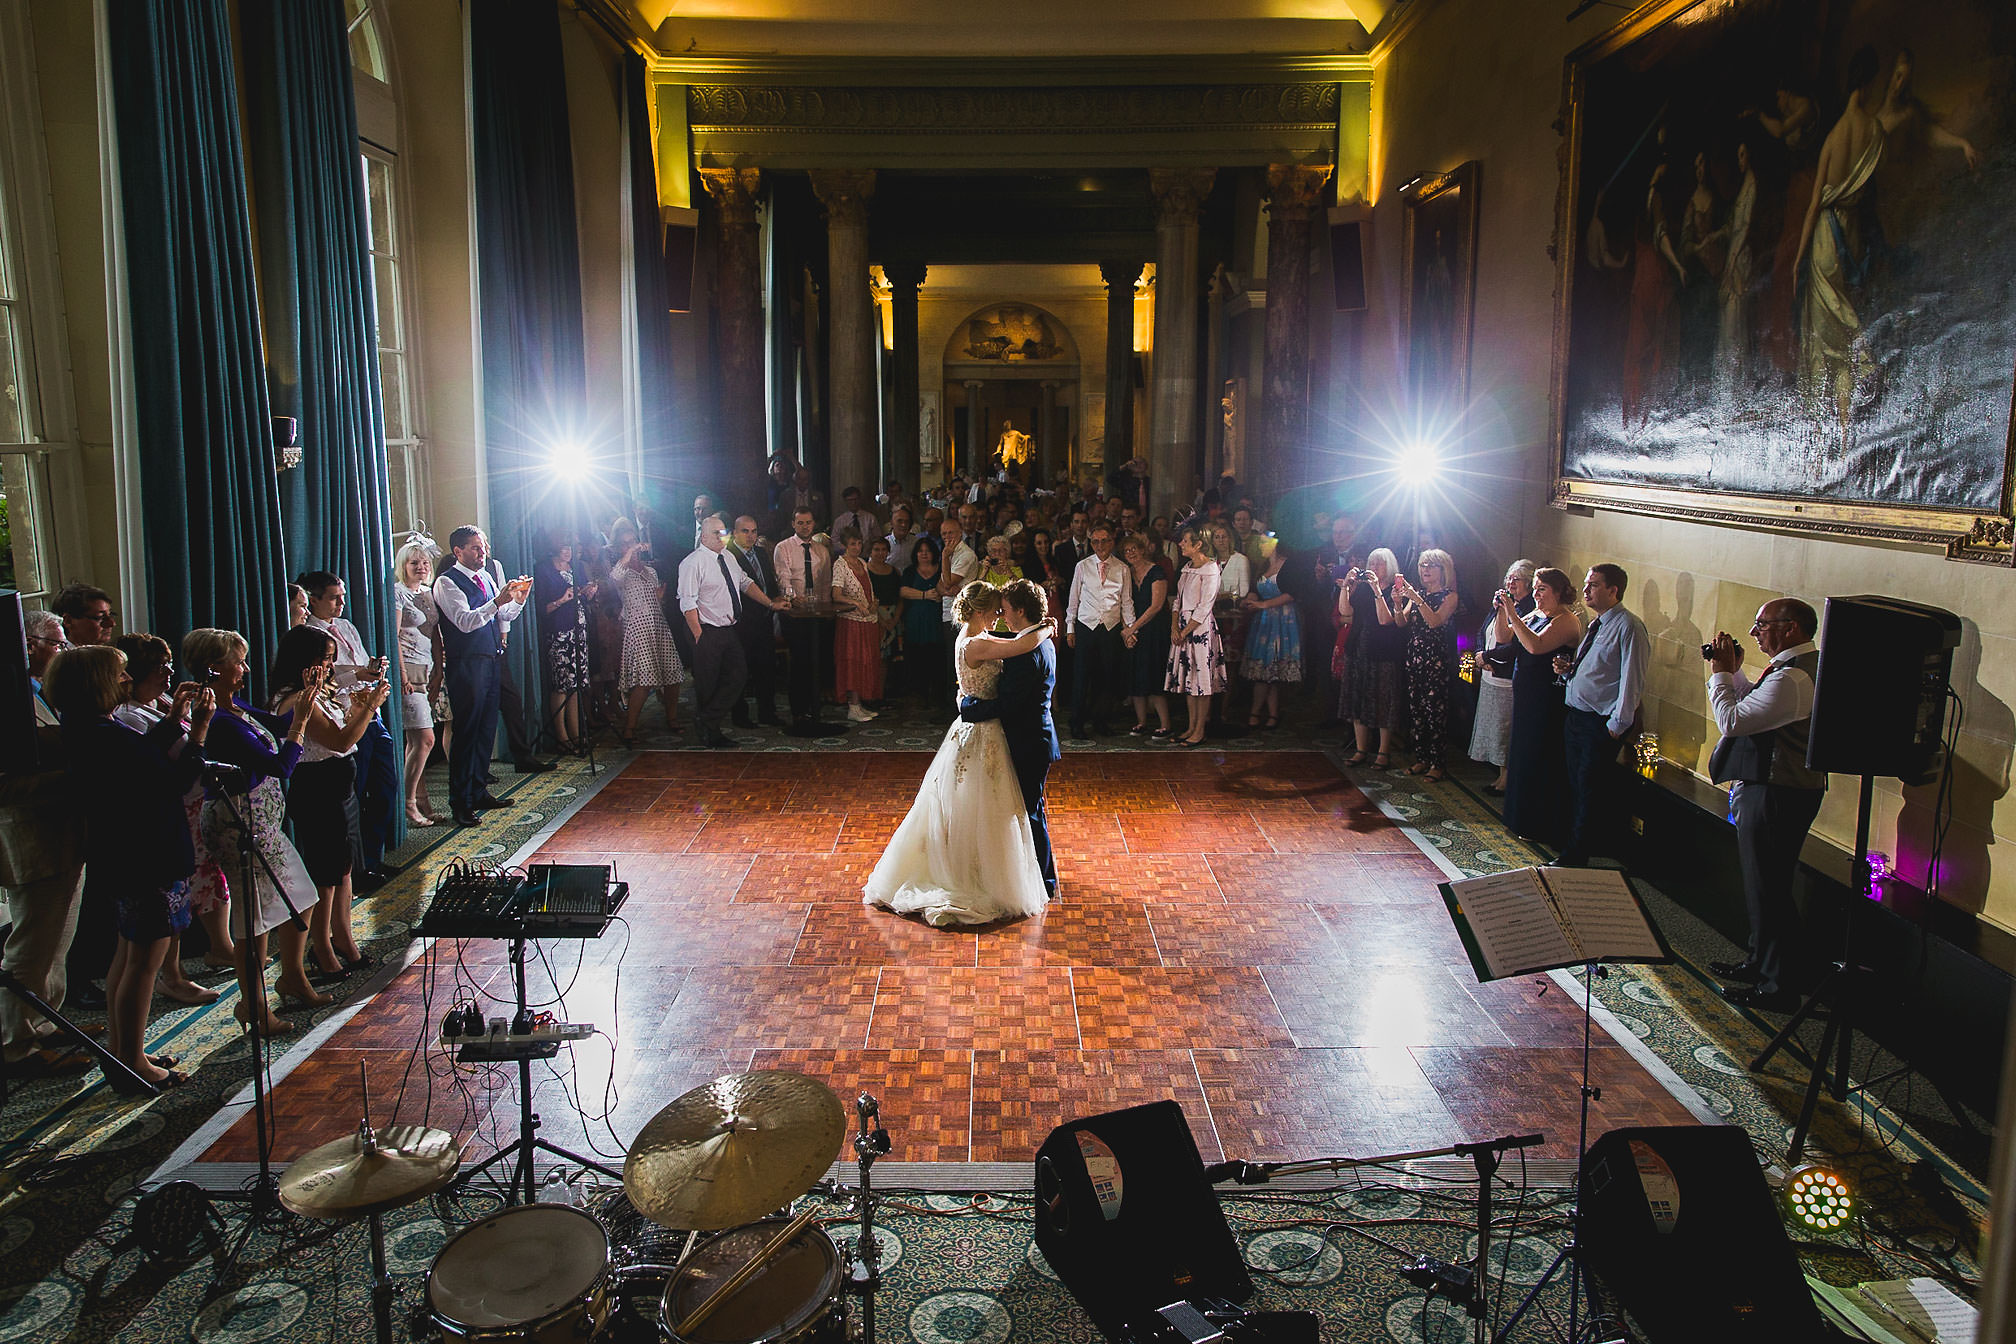 First dance at Woburn Abbey Sculpture Gallery